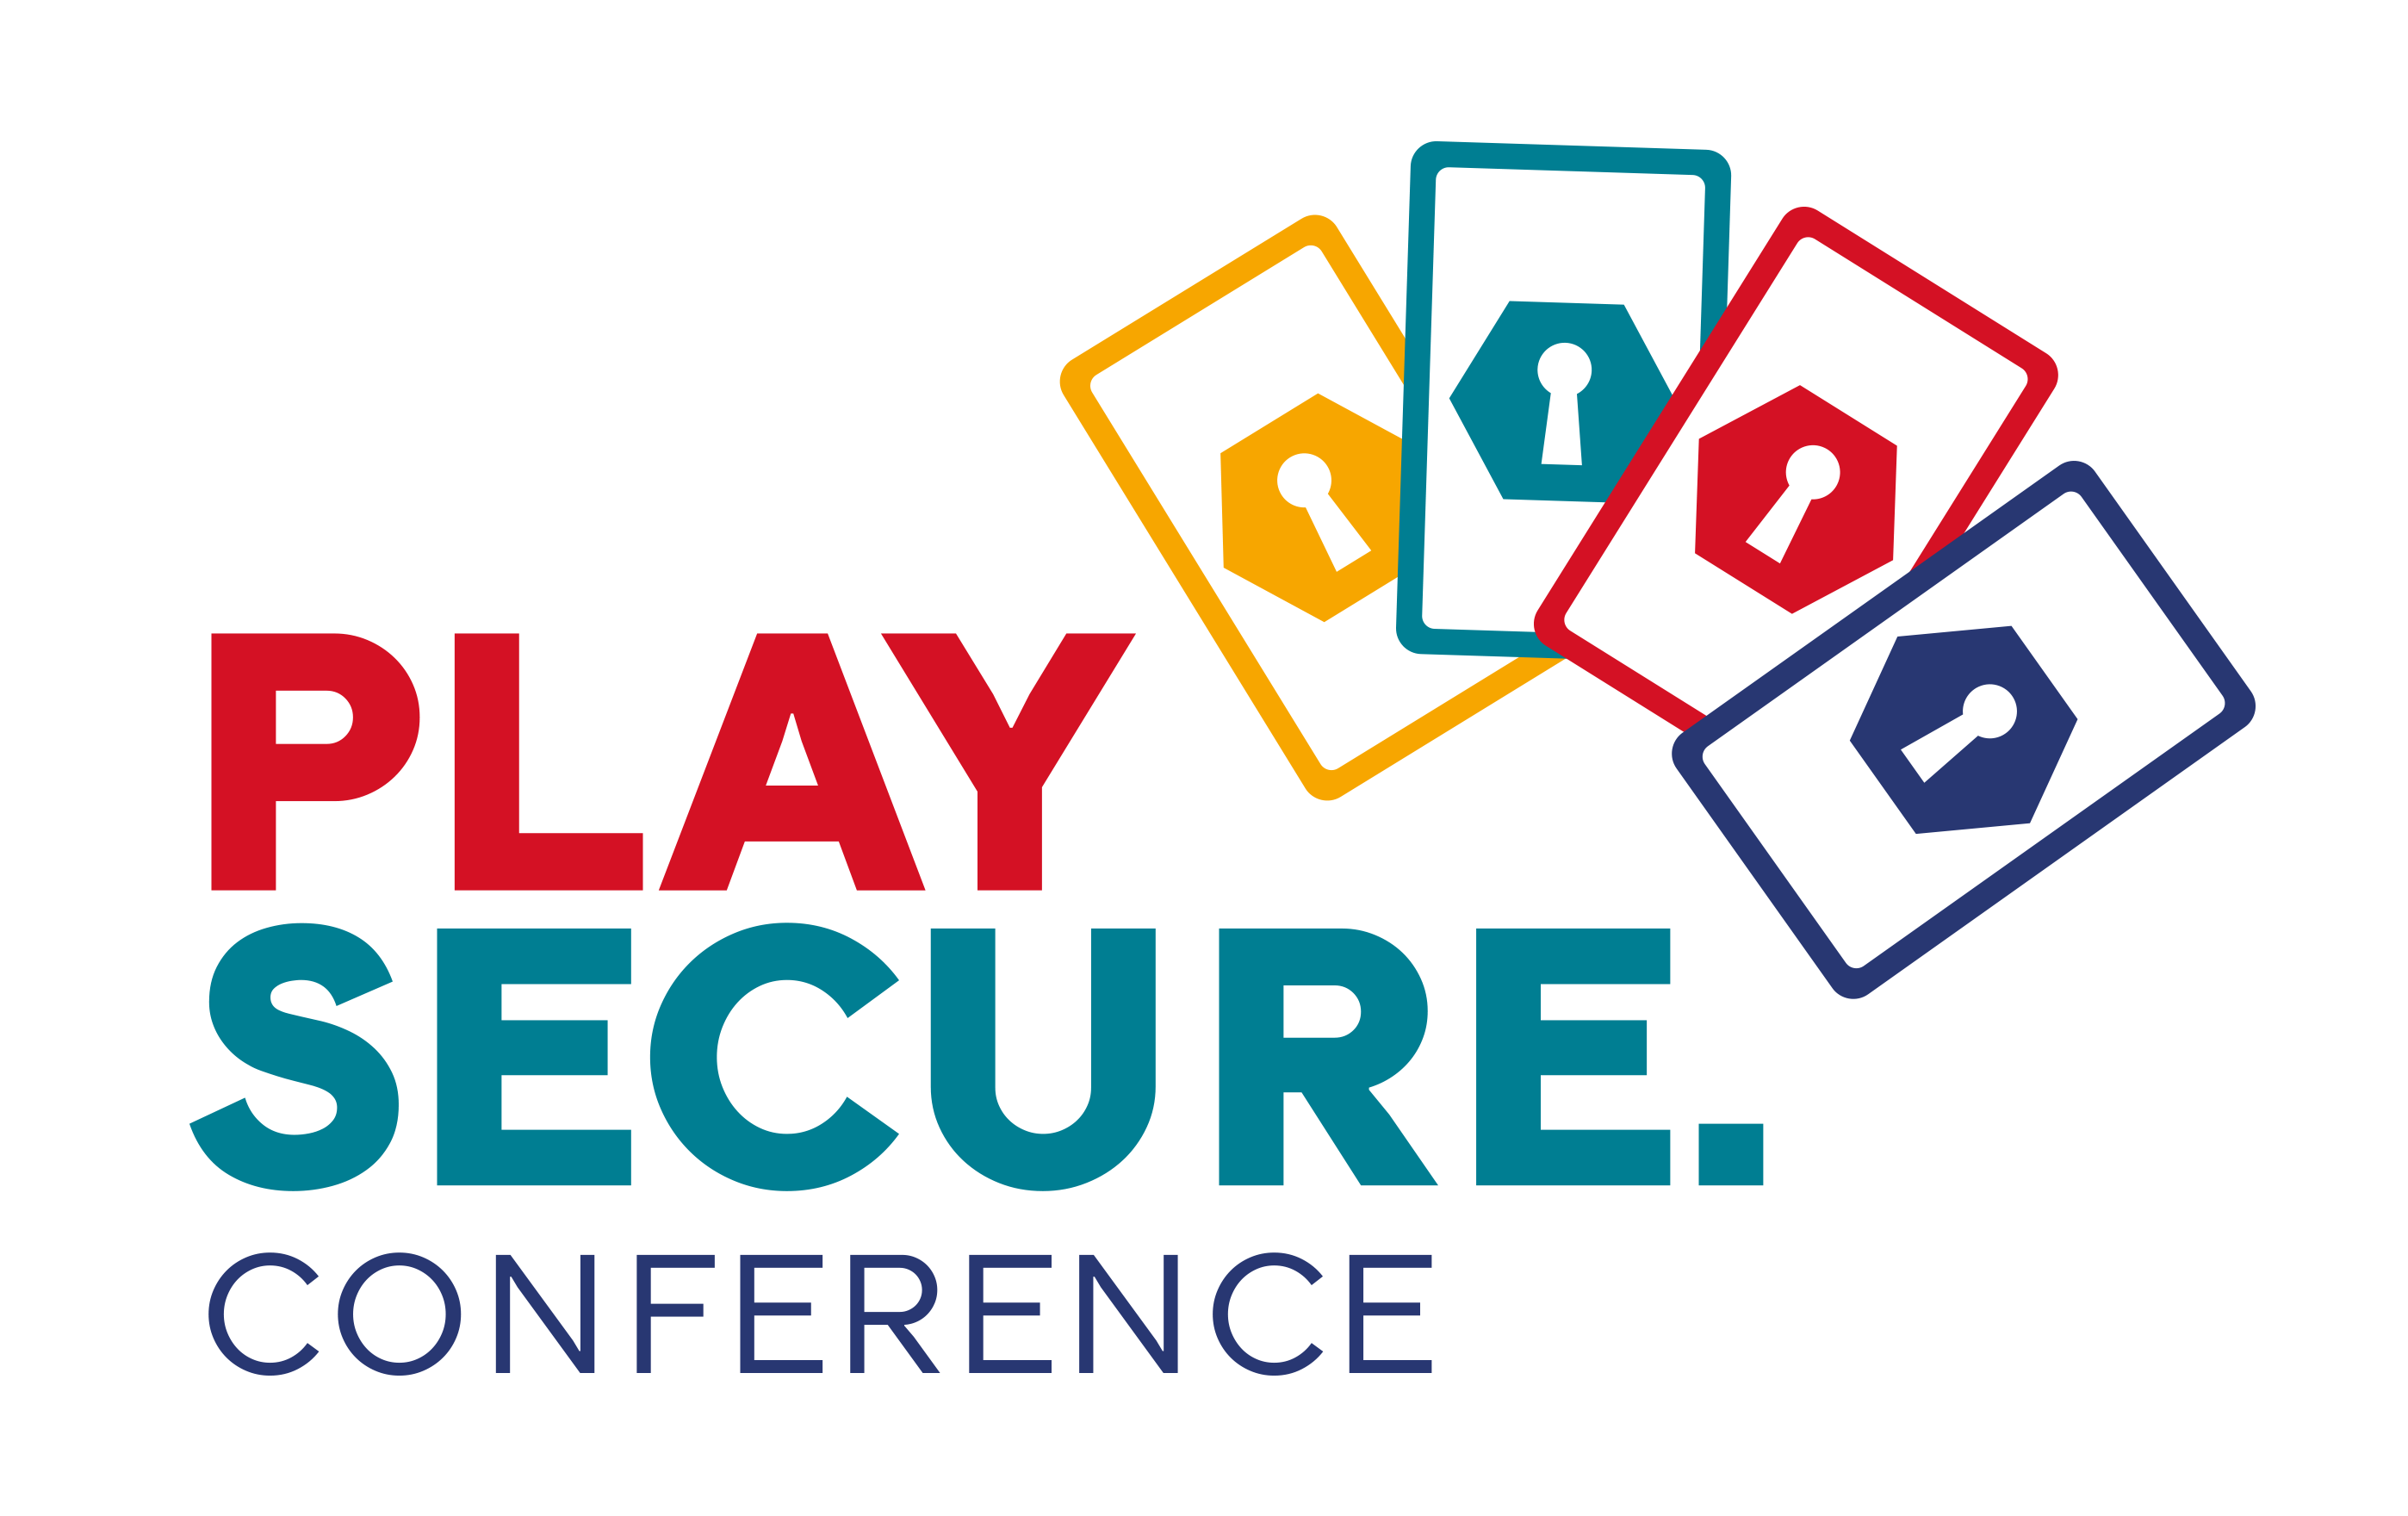 Play Secure Conference